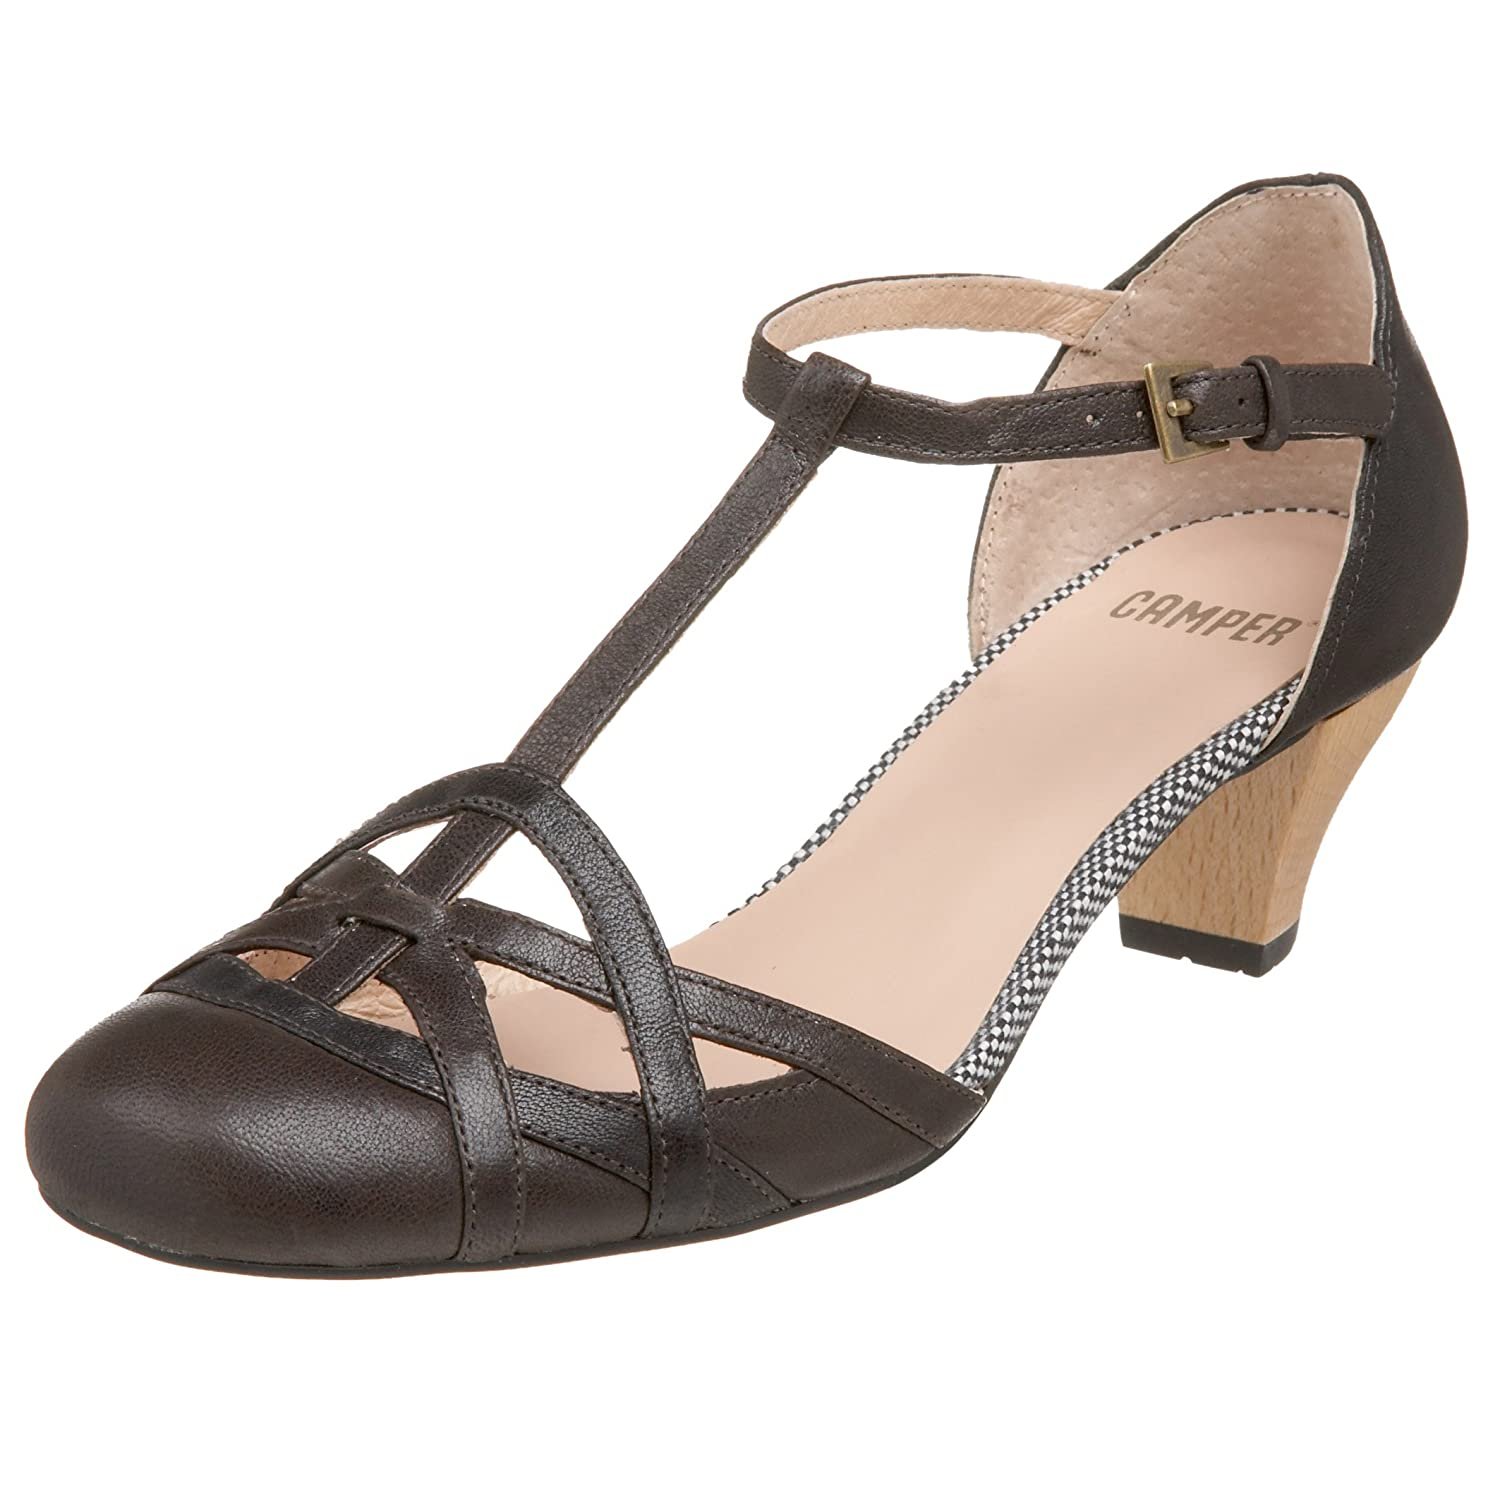 Camper 20927-005 Ous Wedge - Free Overnight Shipping & Return Shipping: Endless.com :  t-strap heels sandals ankle strap